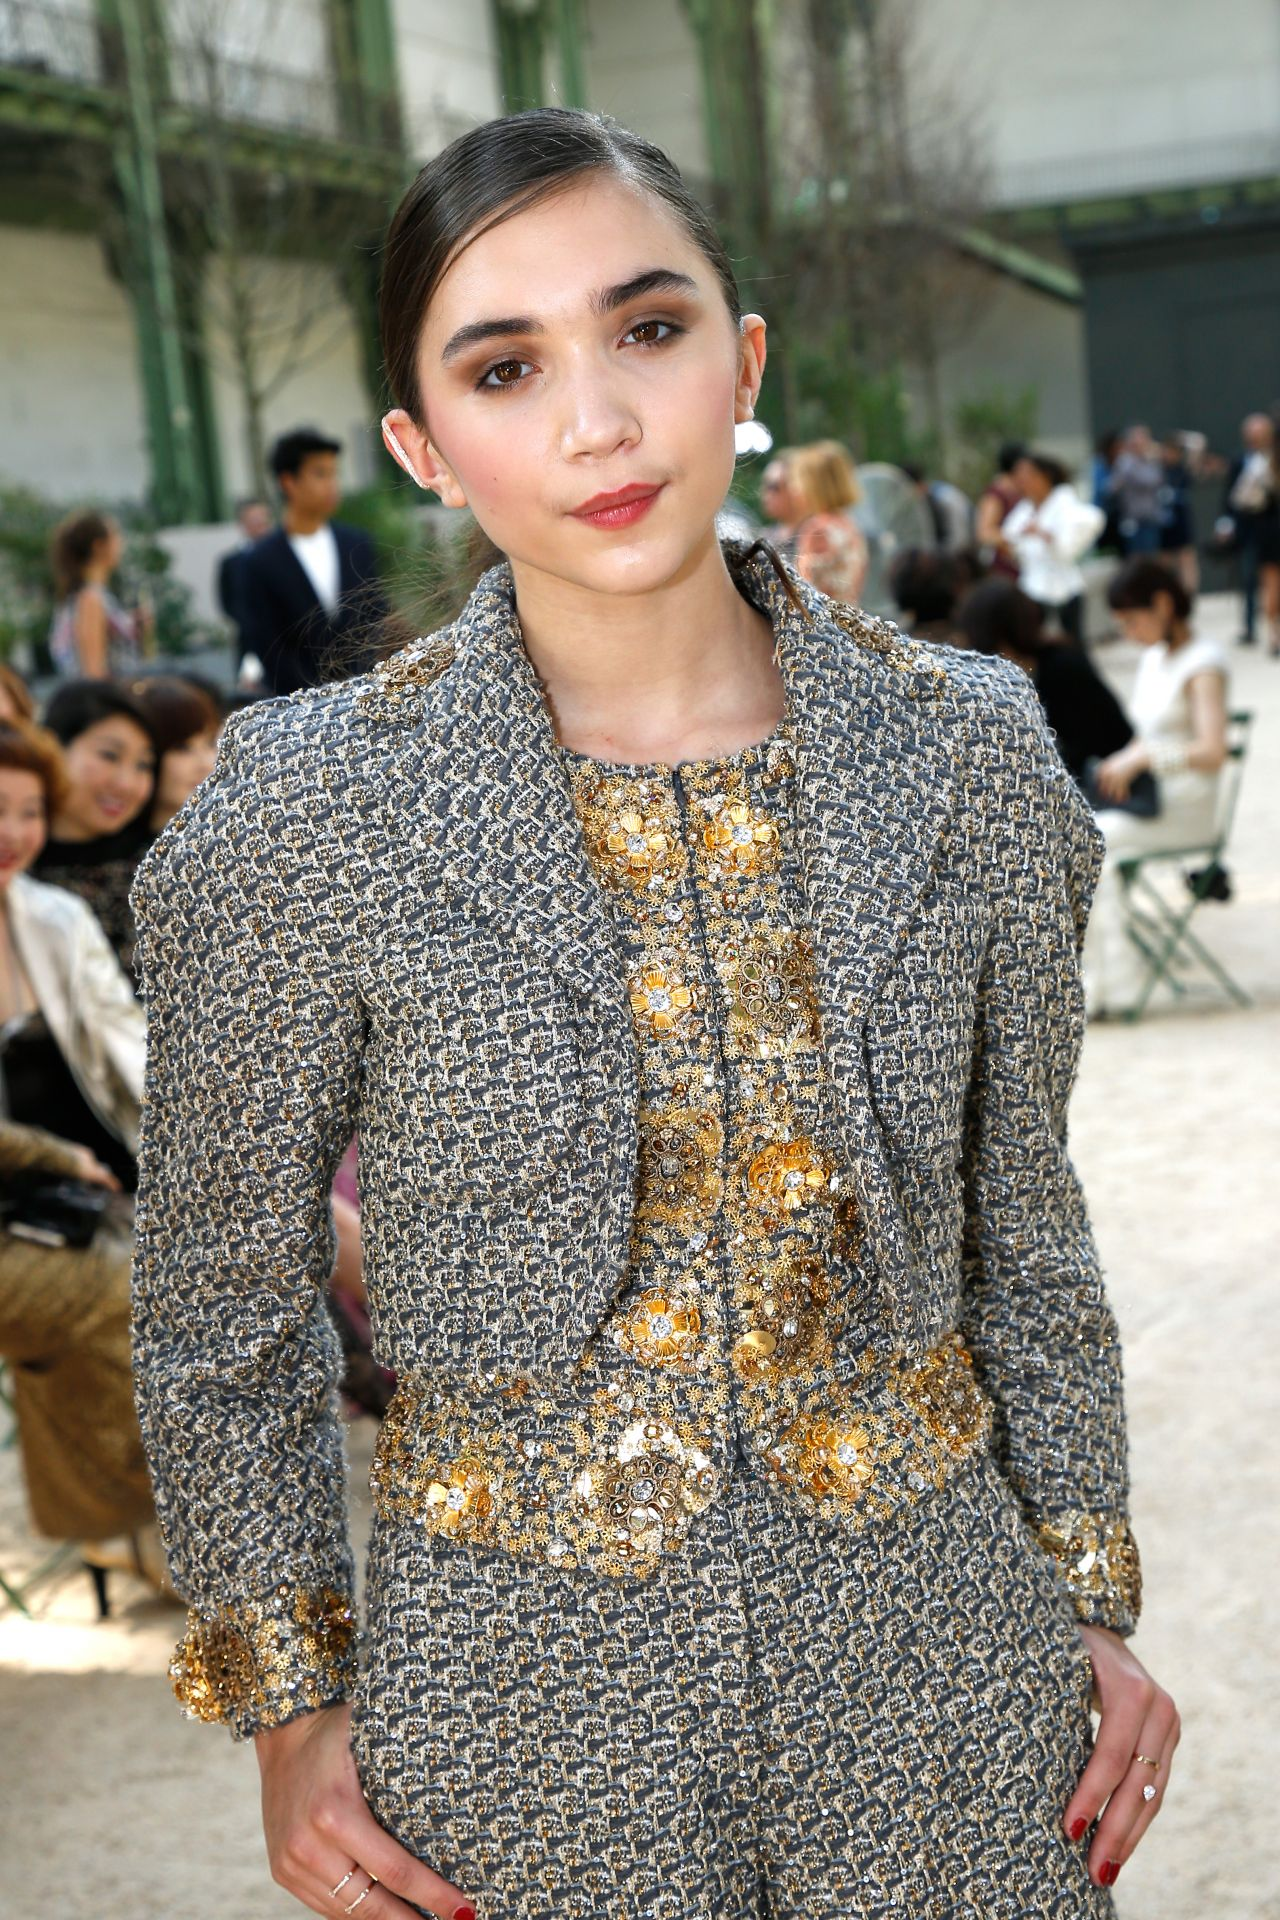 Rowan blanchard fakes 9 celebrity fakes hot girls wallpaper for Hot couture fashion